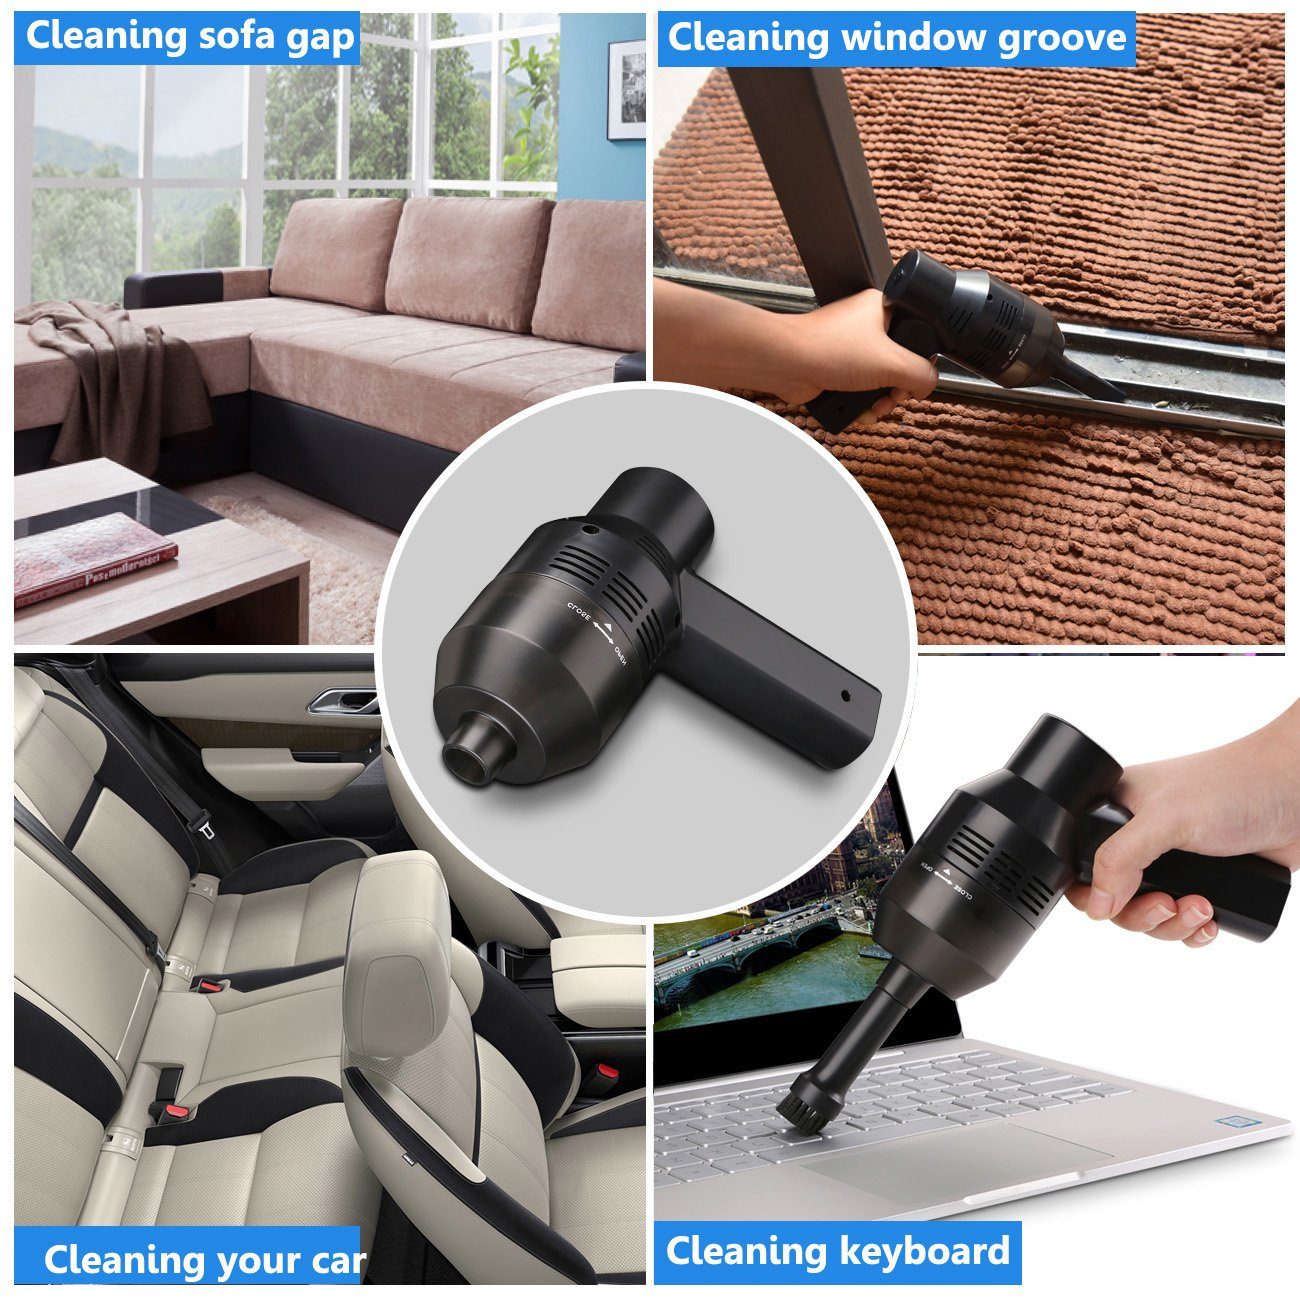 Keyboard Cleaner, USB Rechargeable Mini Vacuum Air Duster with Cleaning Gel, Portable Keyboard Vacuum Cleaner for Cleaning Dust, PC, Hairs, Crumbs, Laptop, Scrap, Piano, Computer, Car and Pet House by Aliengt (Image #2)